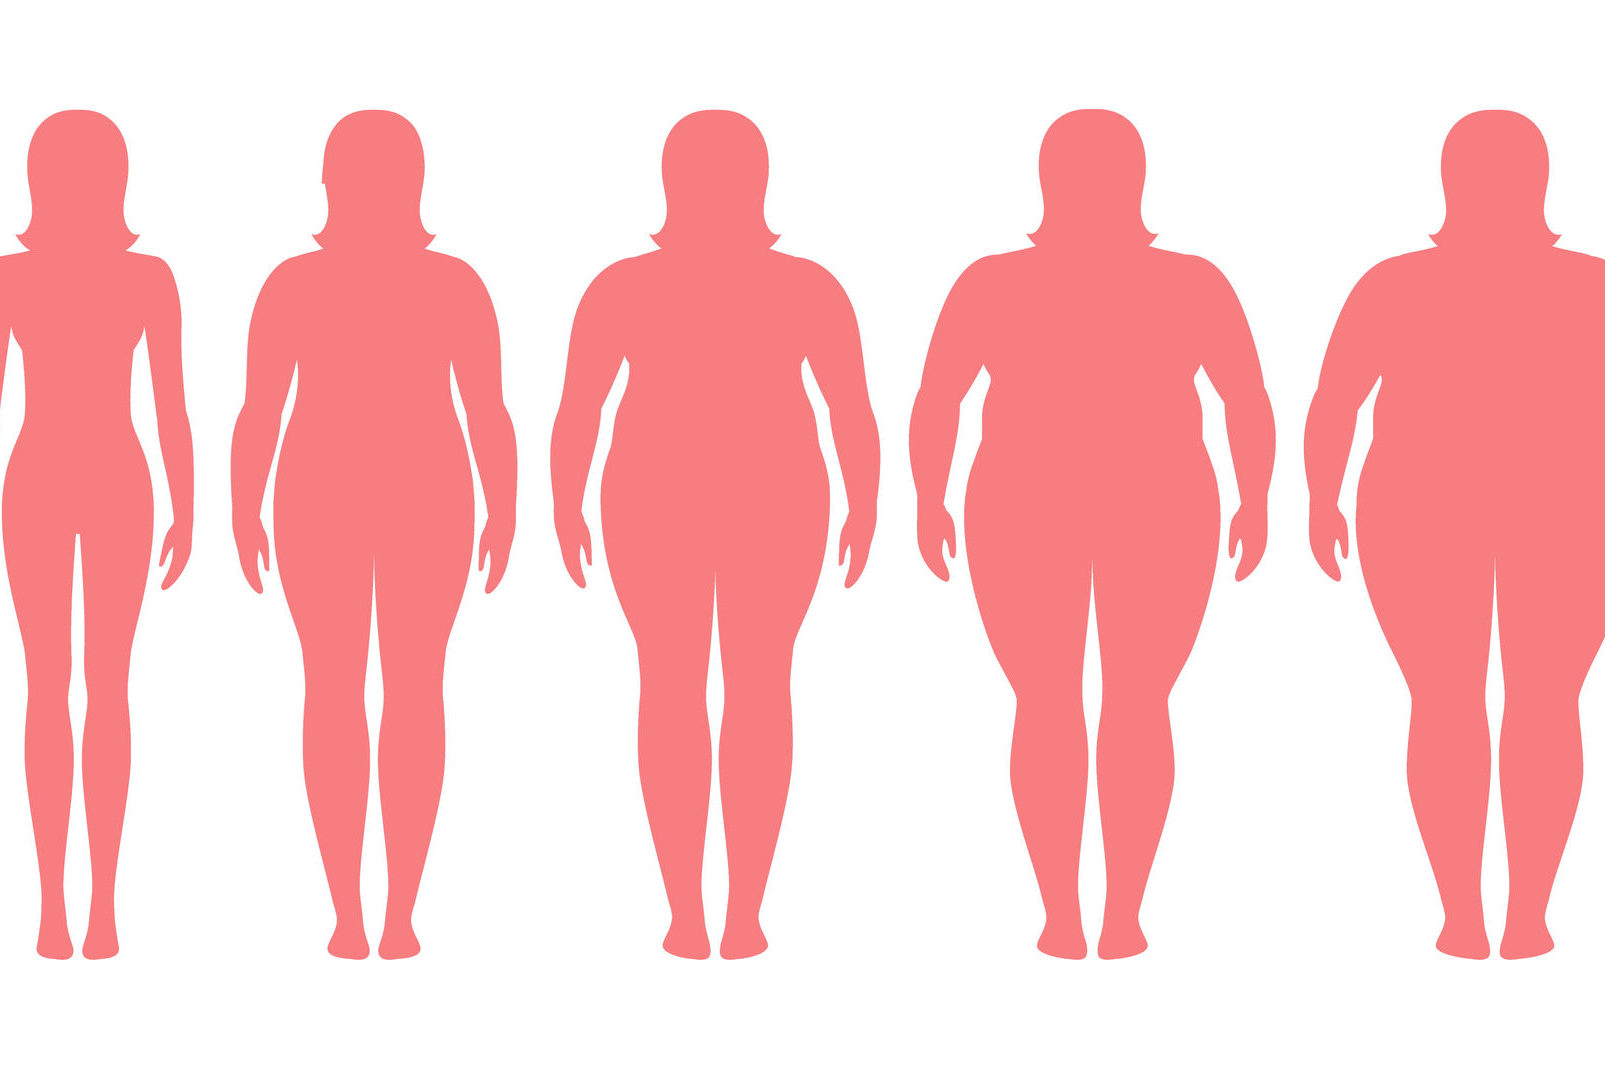 Vector Illustration Of Woman Silhouettes With Different Weight From Anorexia To Extremely Obese Female Weight Scale Society For The Advancement Of Psychotherapy